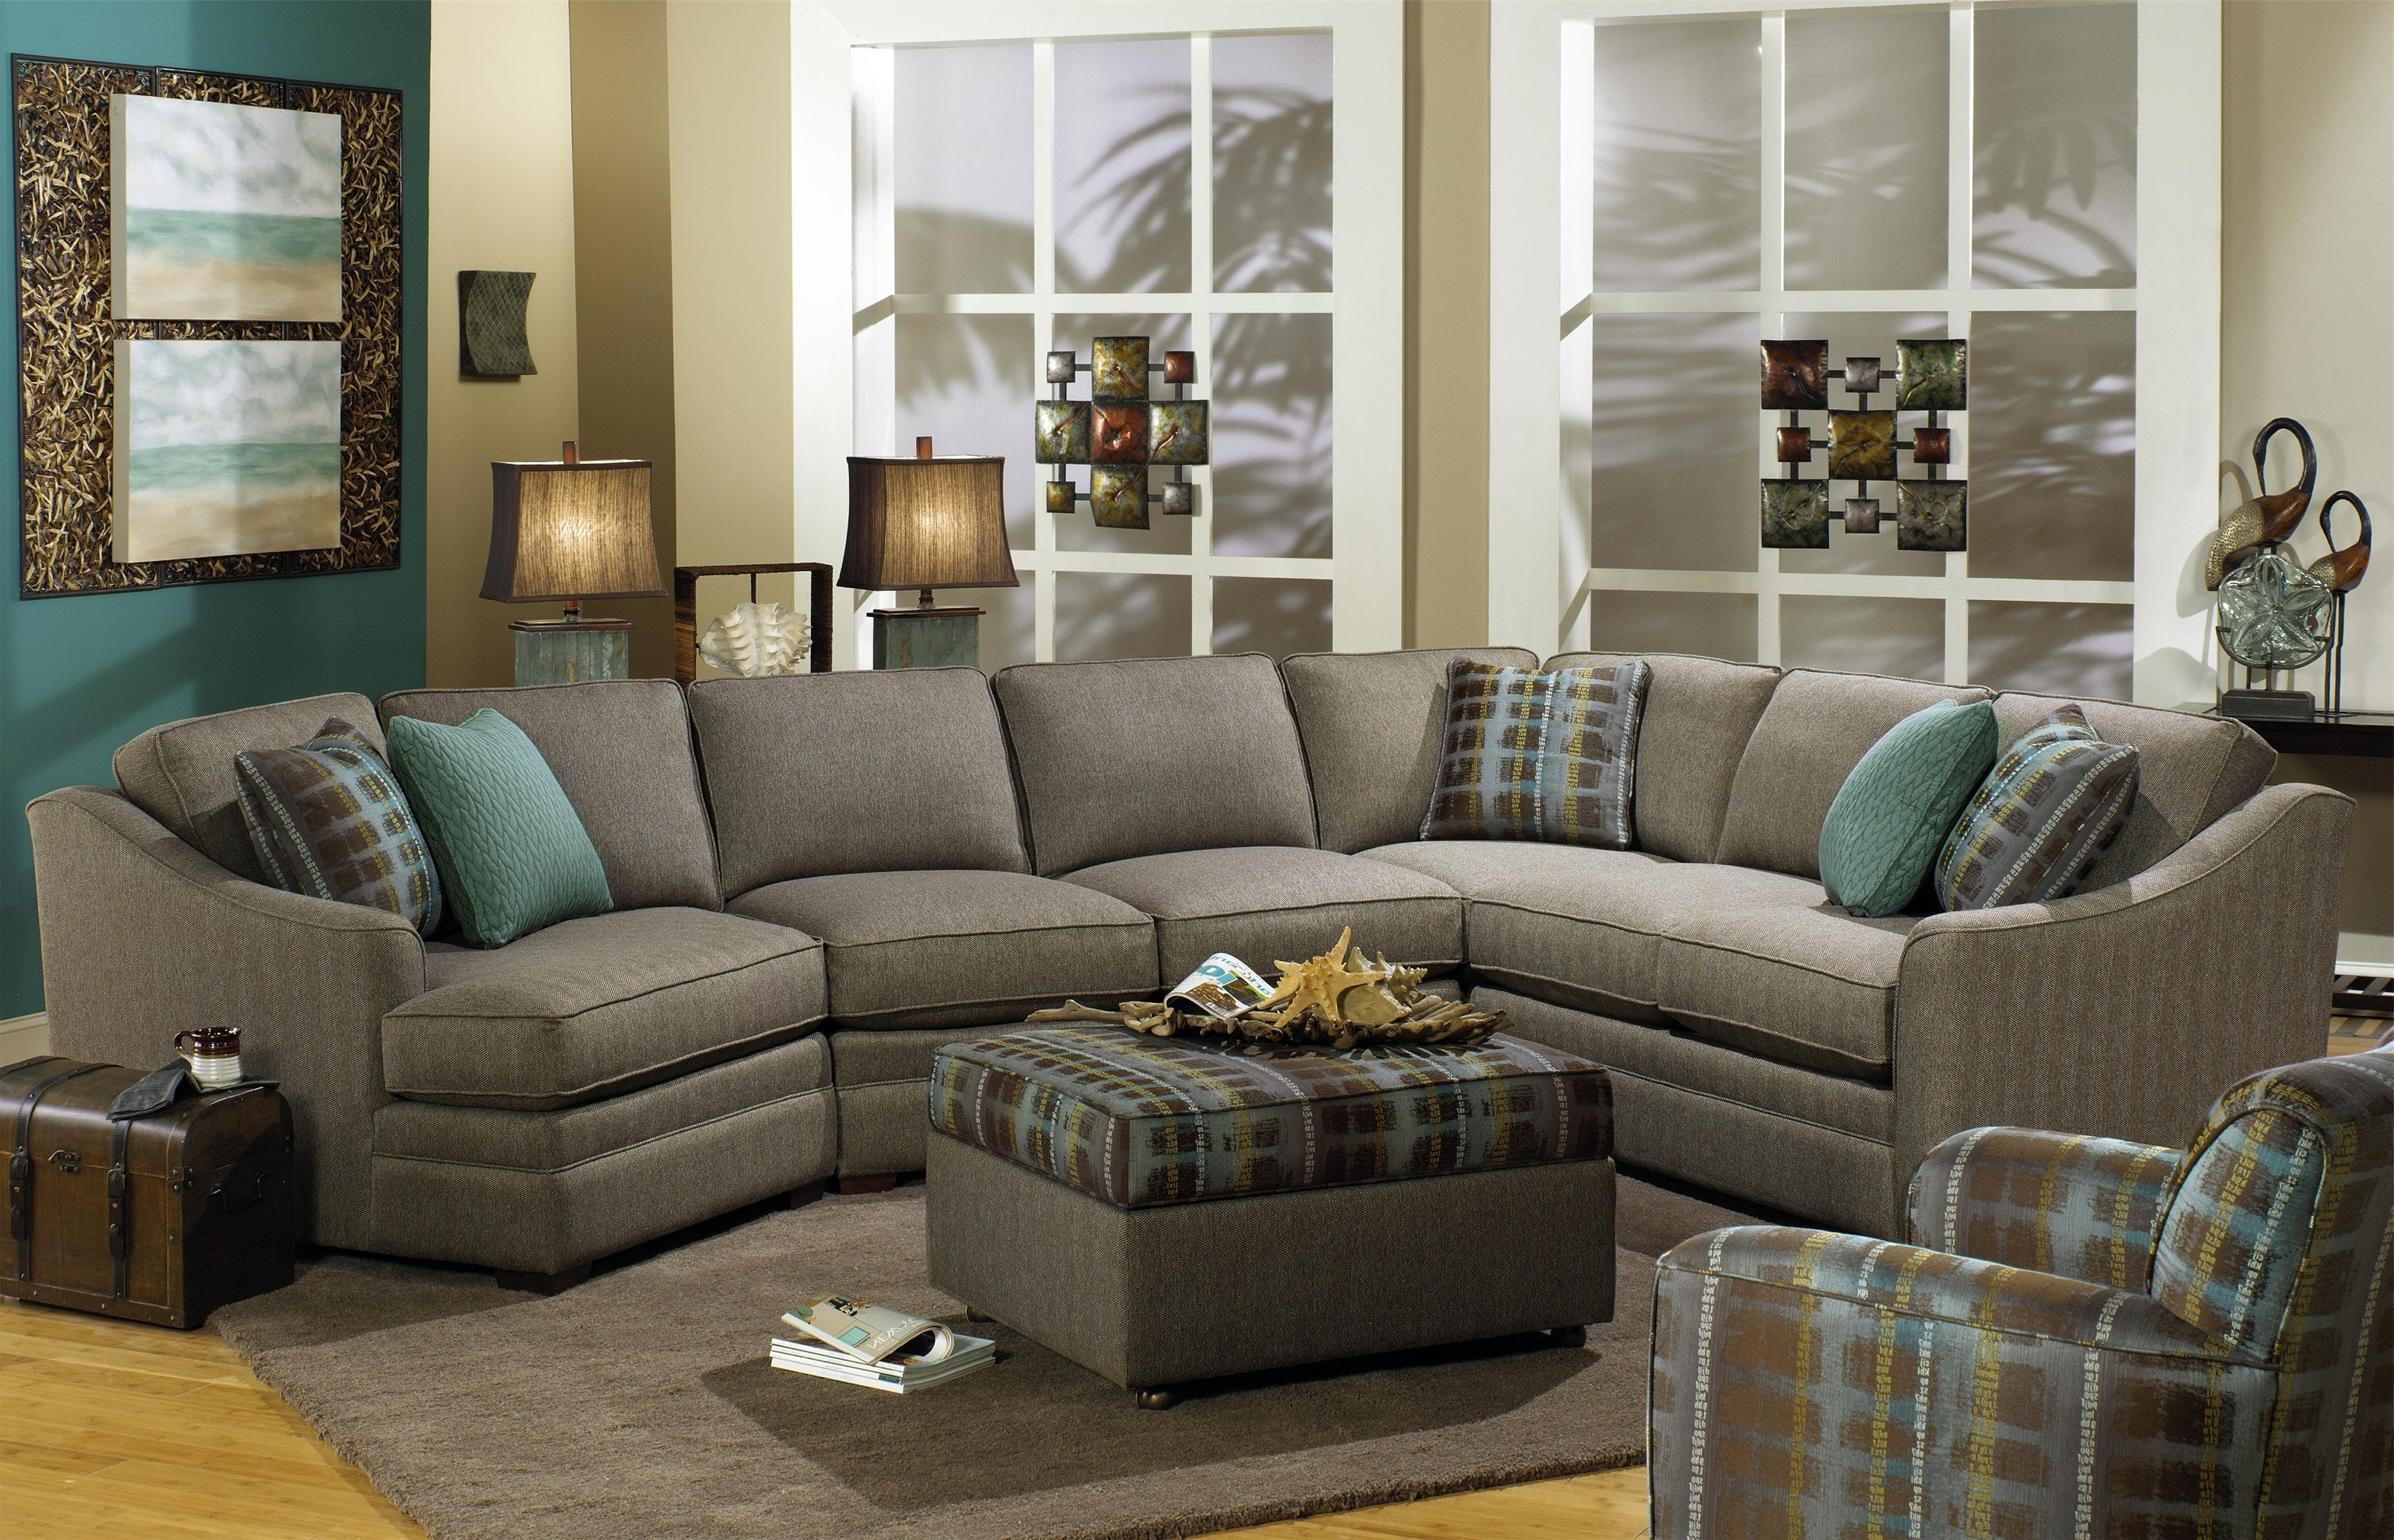 Gallery Craftsman Sectional Sofa – Mediasupload Within Most Recent Craftsman Sectional Sofas (View 11 of 20)